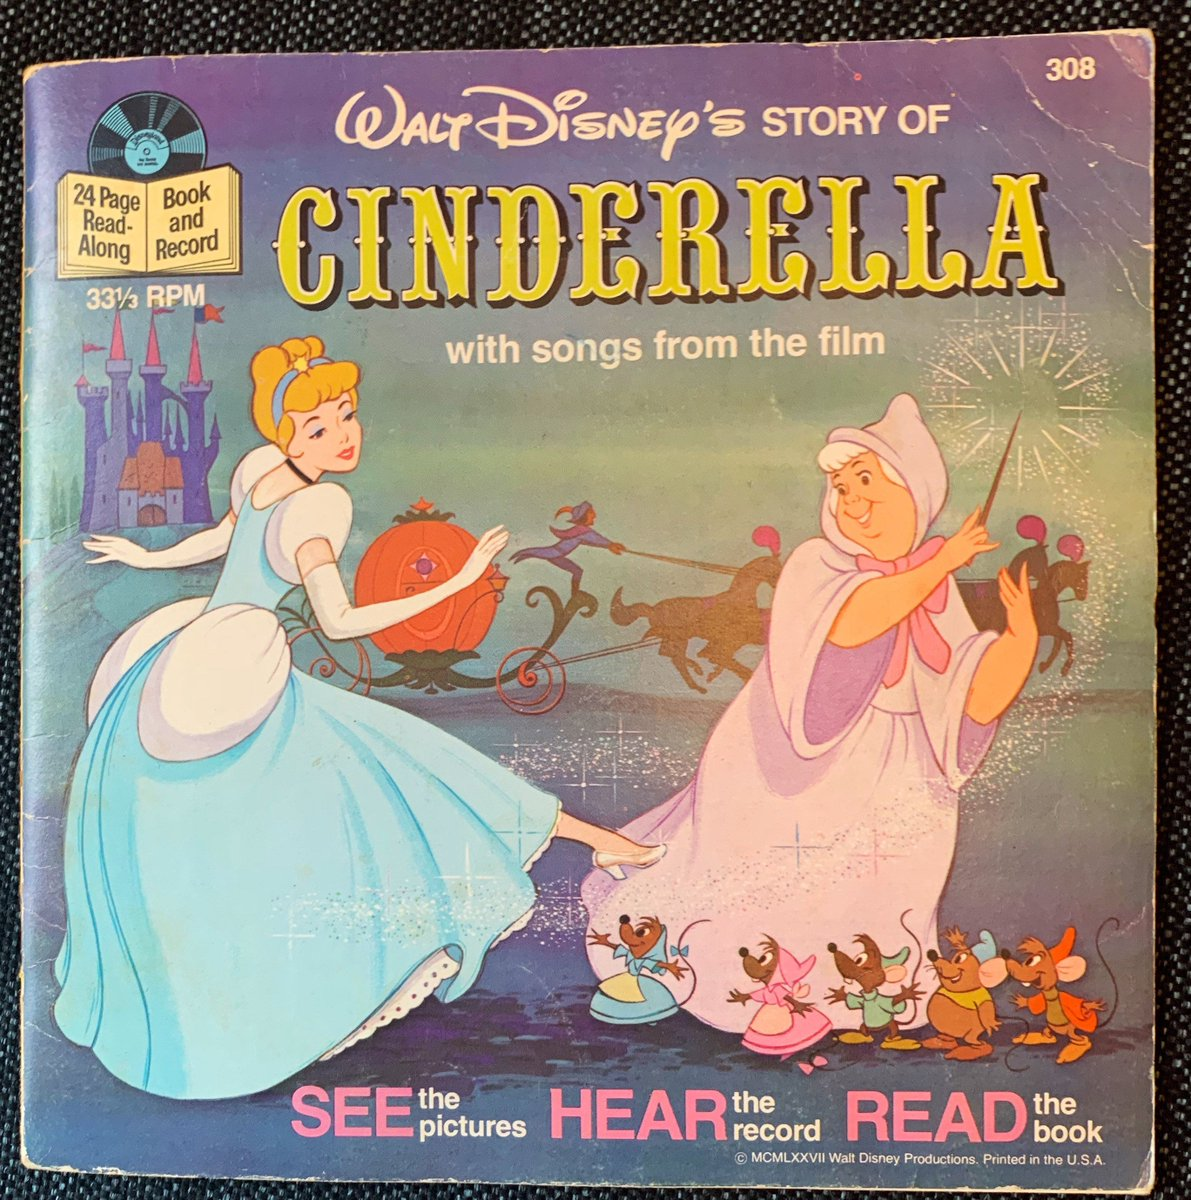 Excited to share the latest addition to my #etsy shop: Vintage Walt Disney Presents Cinderella Book and Record from 1977 https://etsy.me/2WVzVqQ #waltdisneyrecords #disneyworld #mickeymouse #1970s #recordplayer #comicbooks #cartoons #classiccharacters #comicbookpic.twitter.com/AWy1SUGQVF